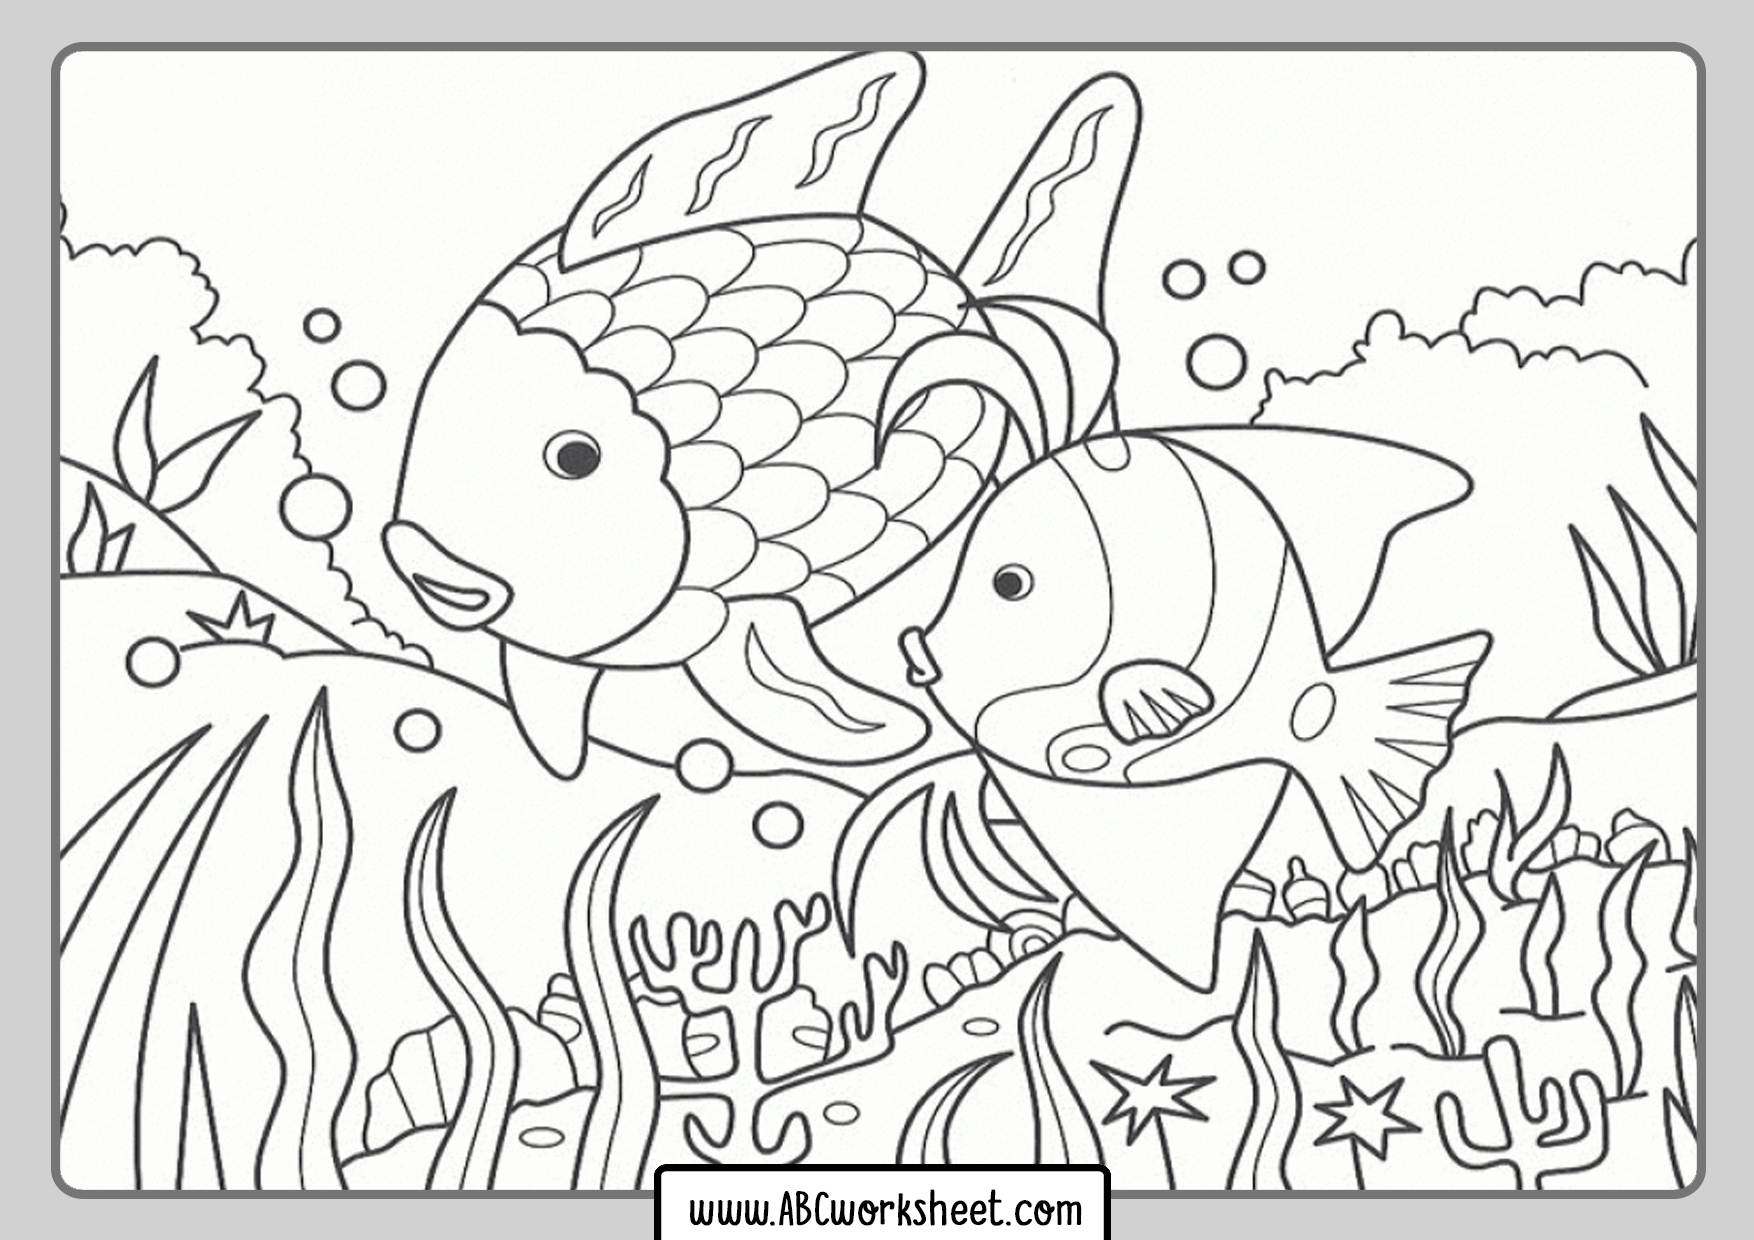 Fishing Fish Coloring Pages